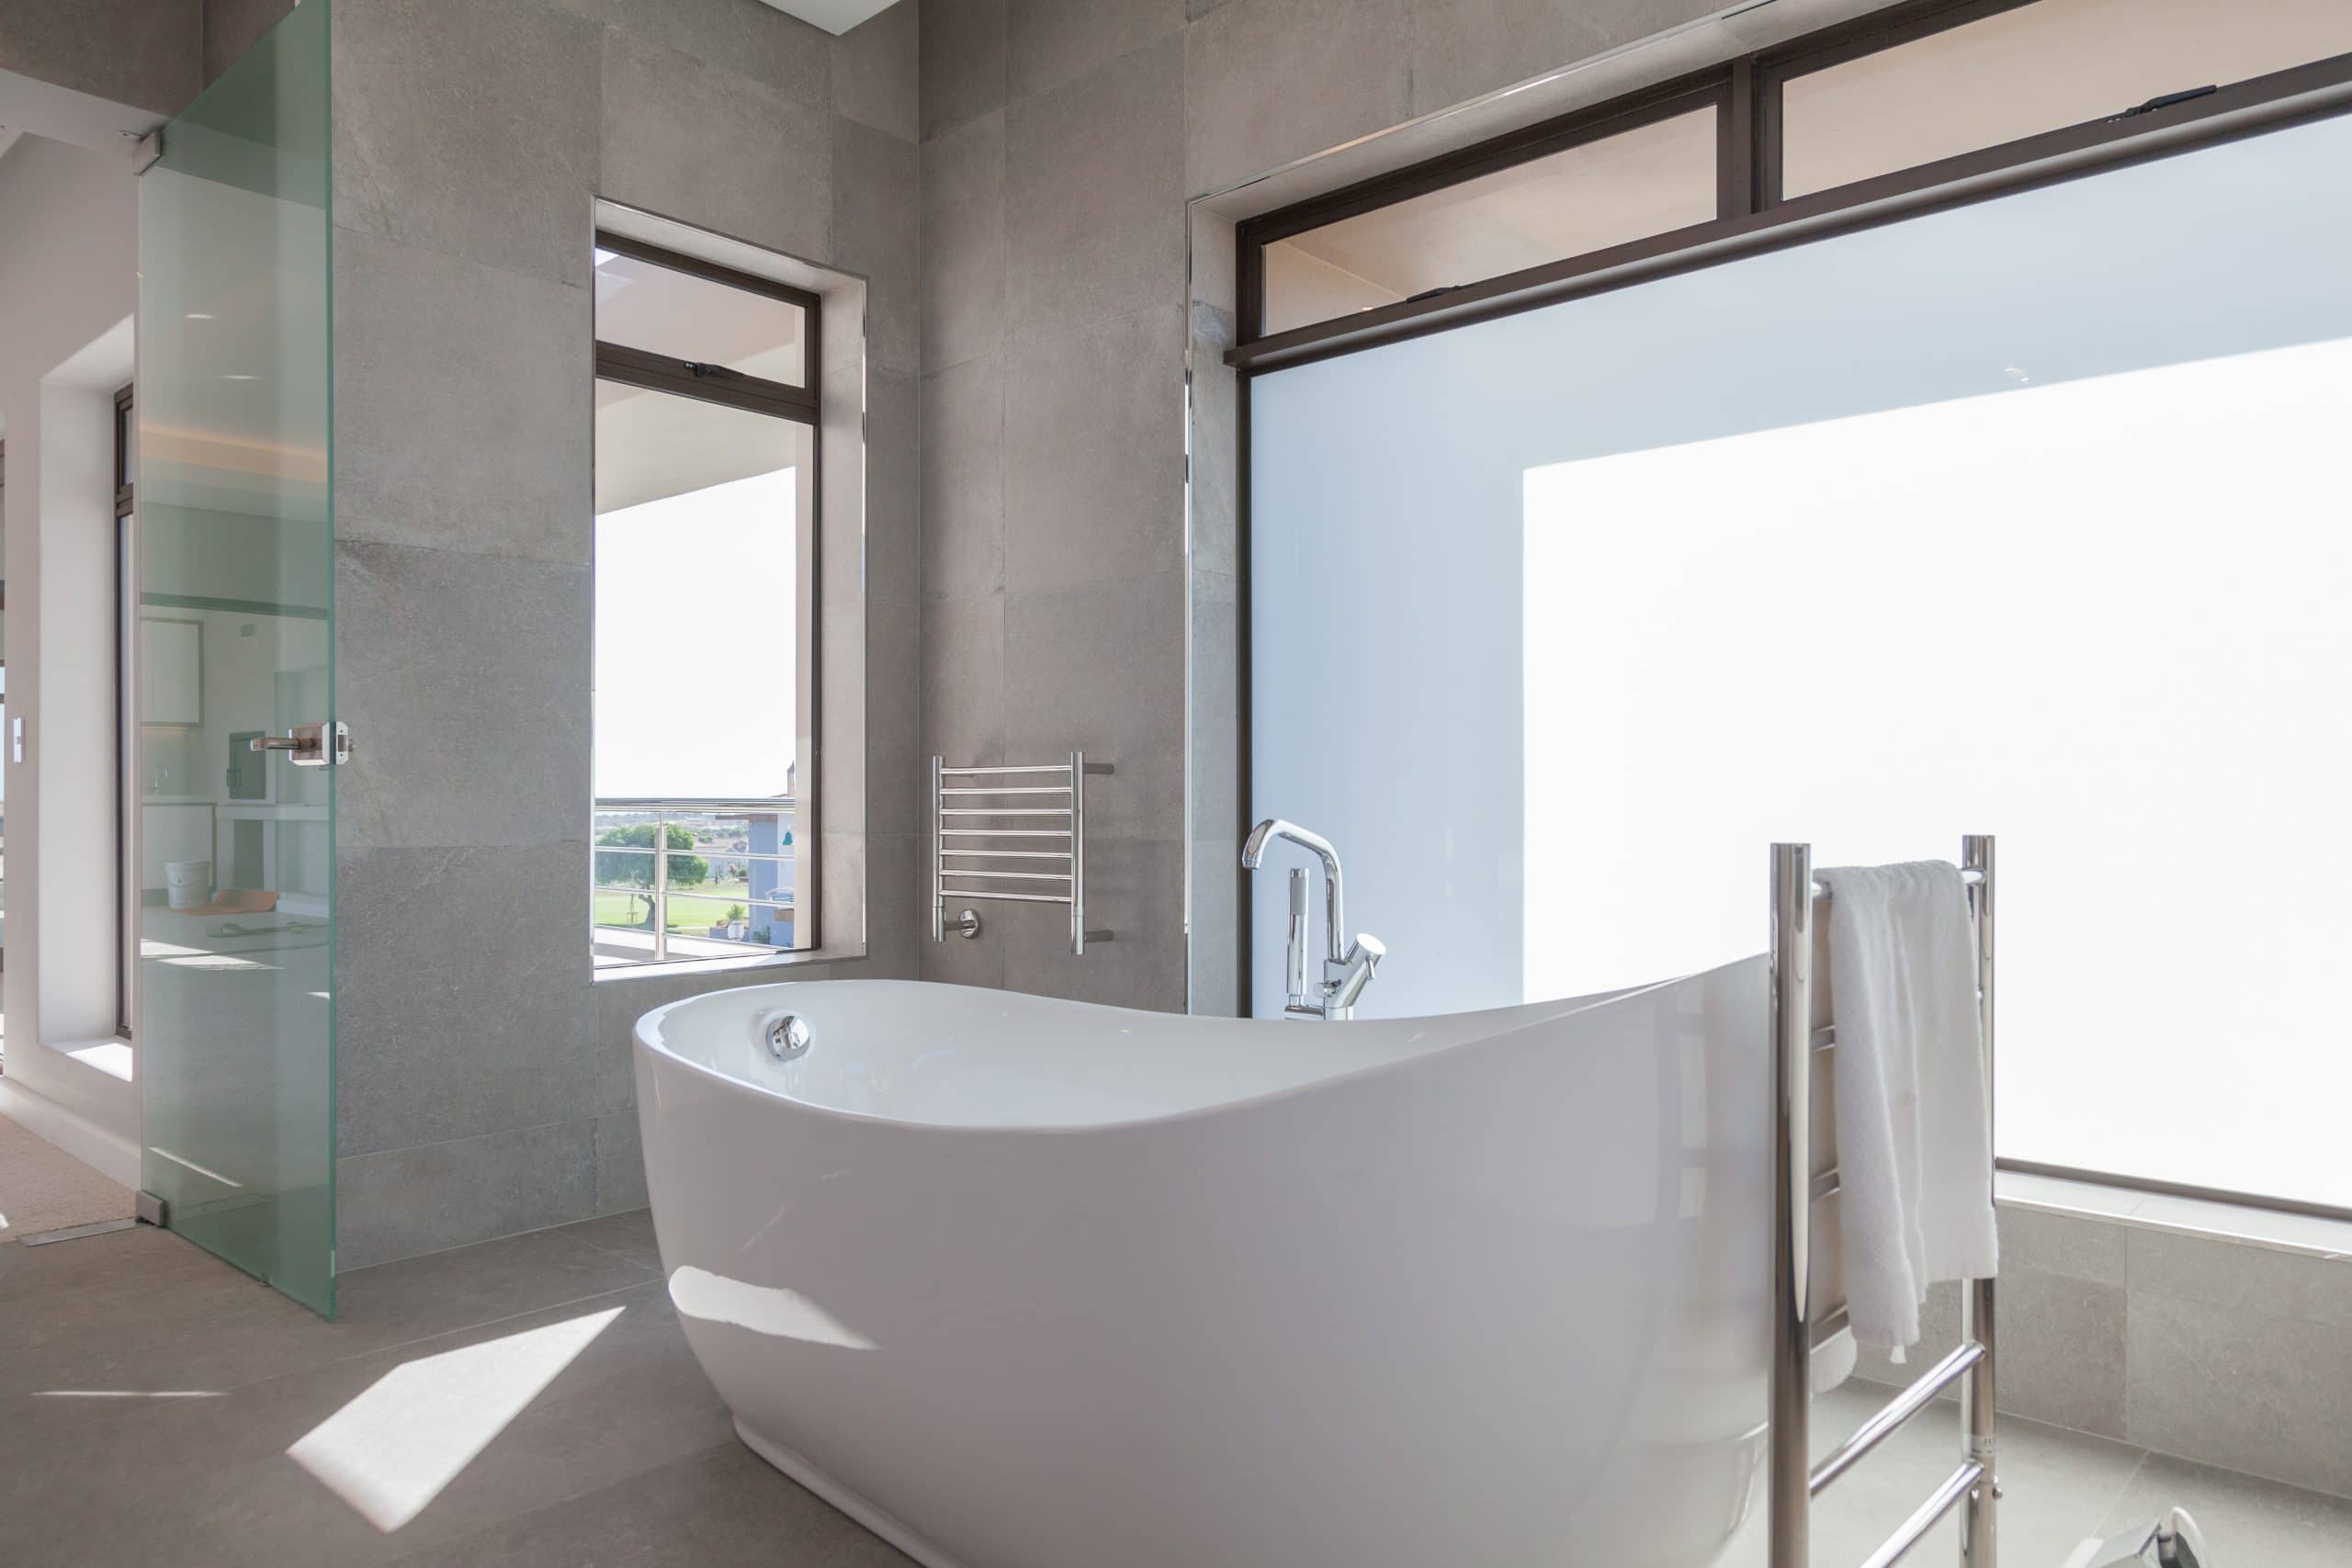 freestanding bath overlooking langebaan lagoon and glass bathroom door